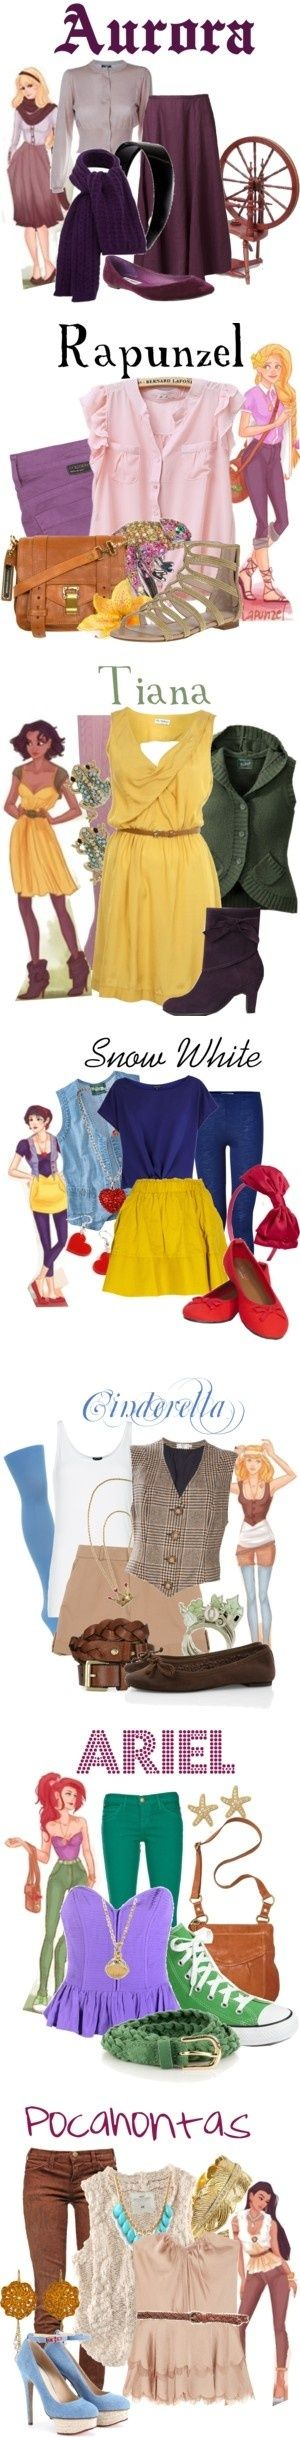 Disney outfits interesting concept find more women fashion ideas on www.misspool.com                                                                                                                                                      More